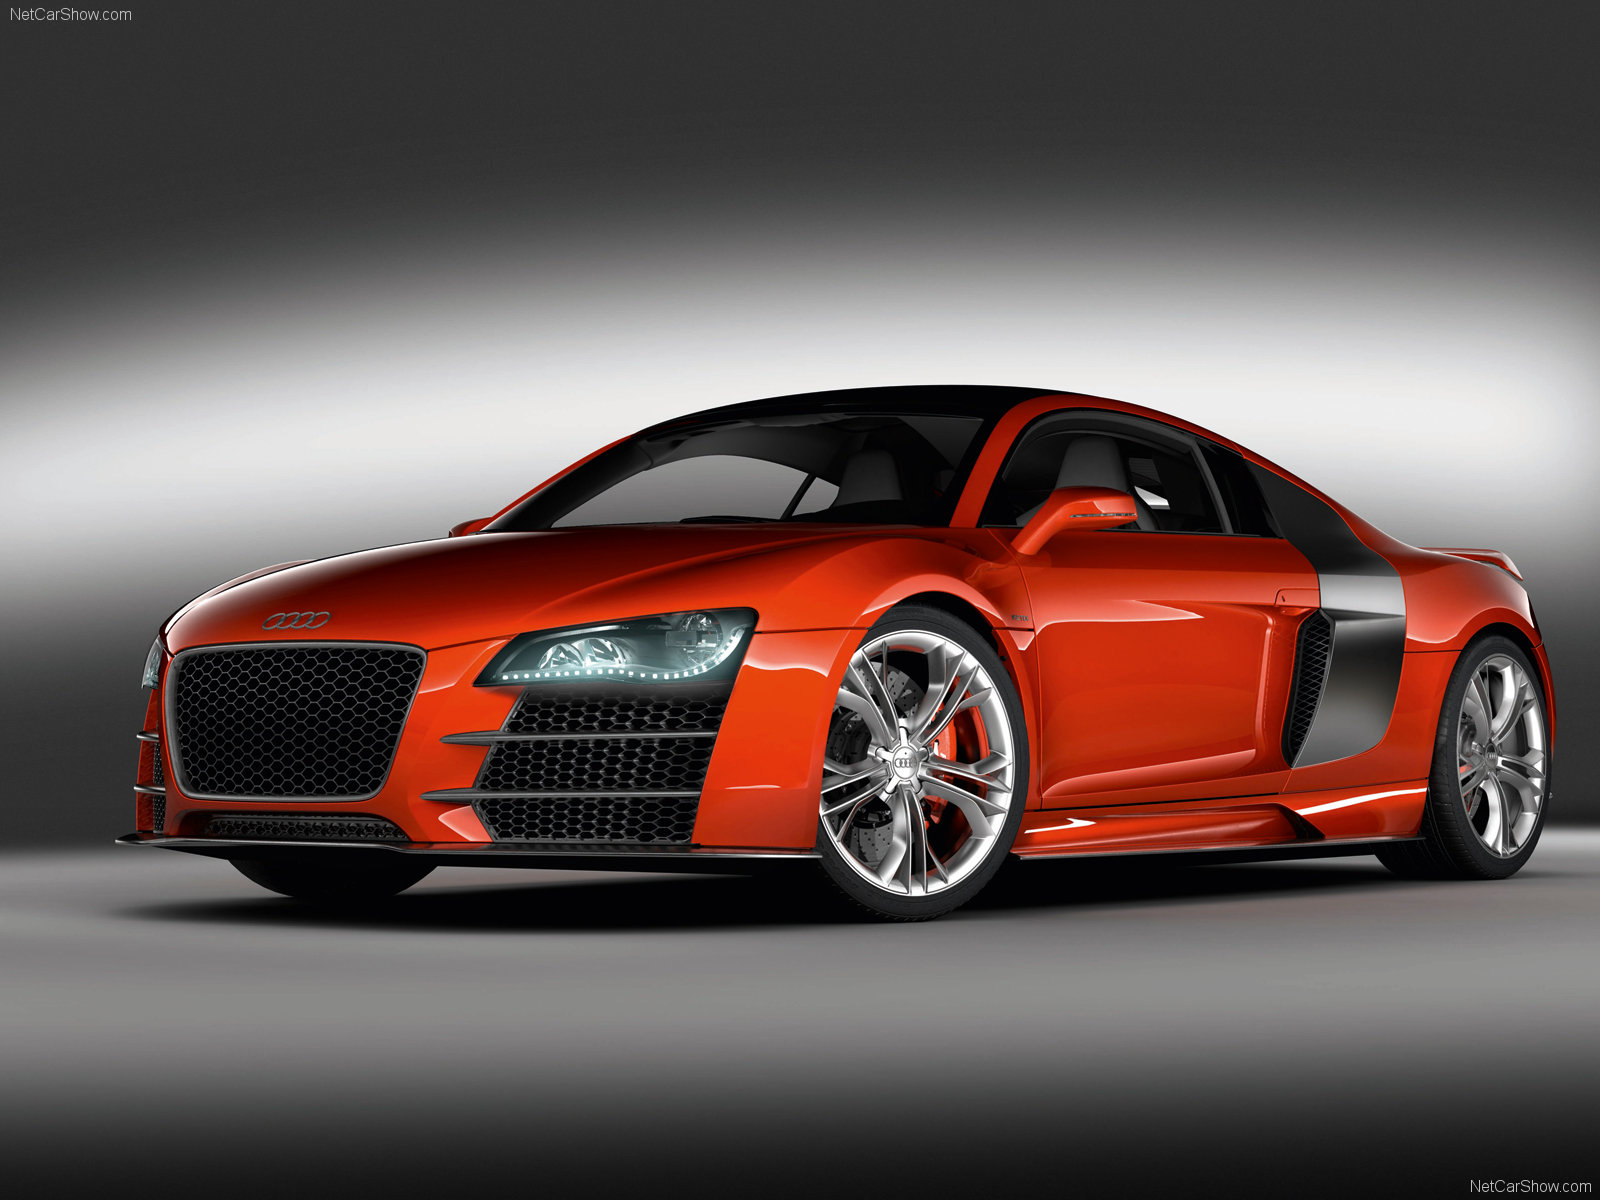 audi r8 v12 tdi picture 53035 audi photo gallery. Black Bedroom Furniture Sets. Home Design Ideas